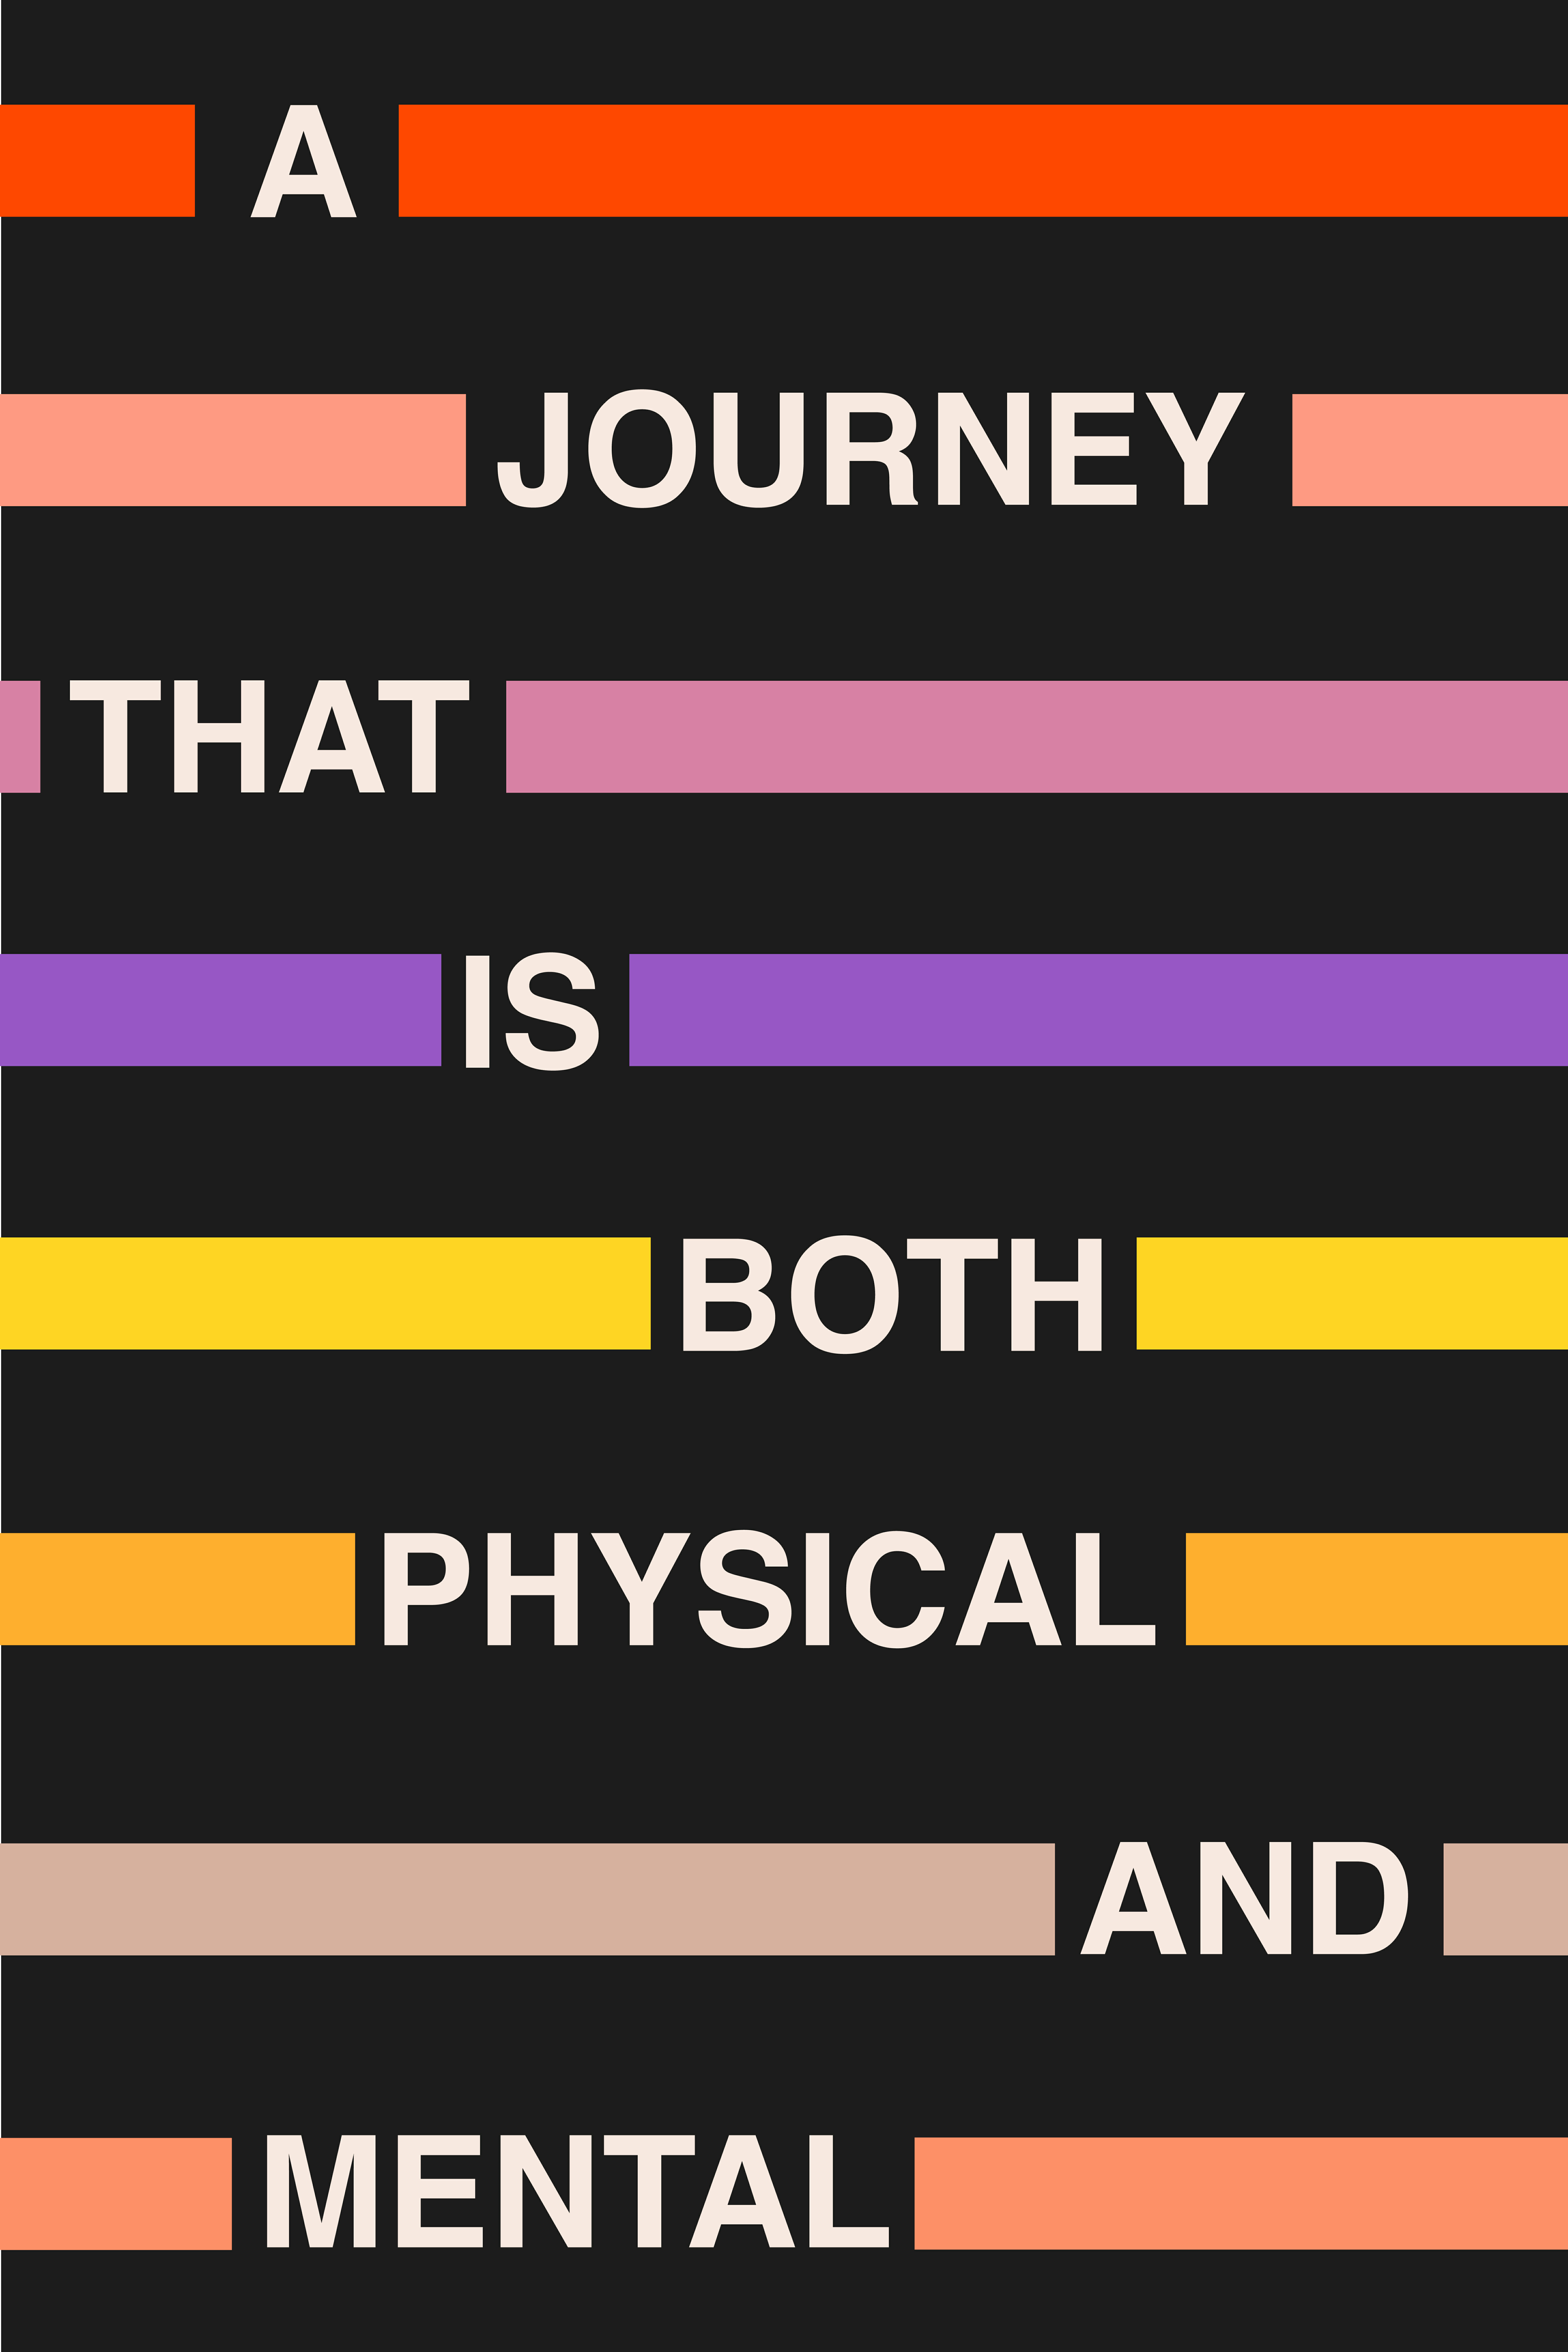 A journey that is both physical and mental